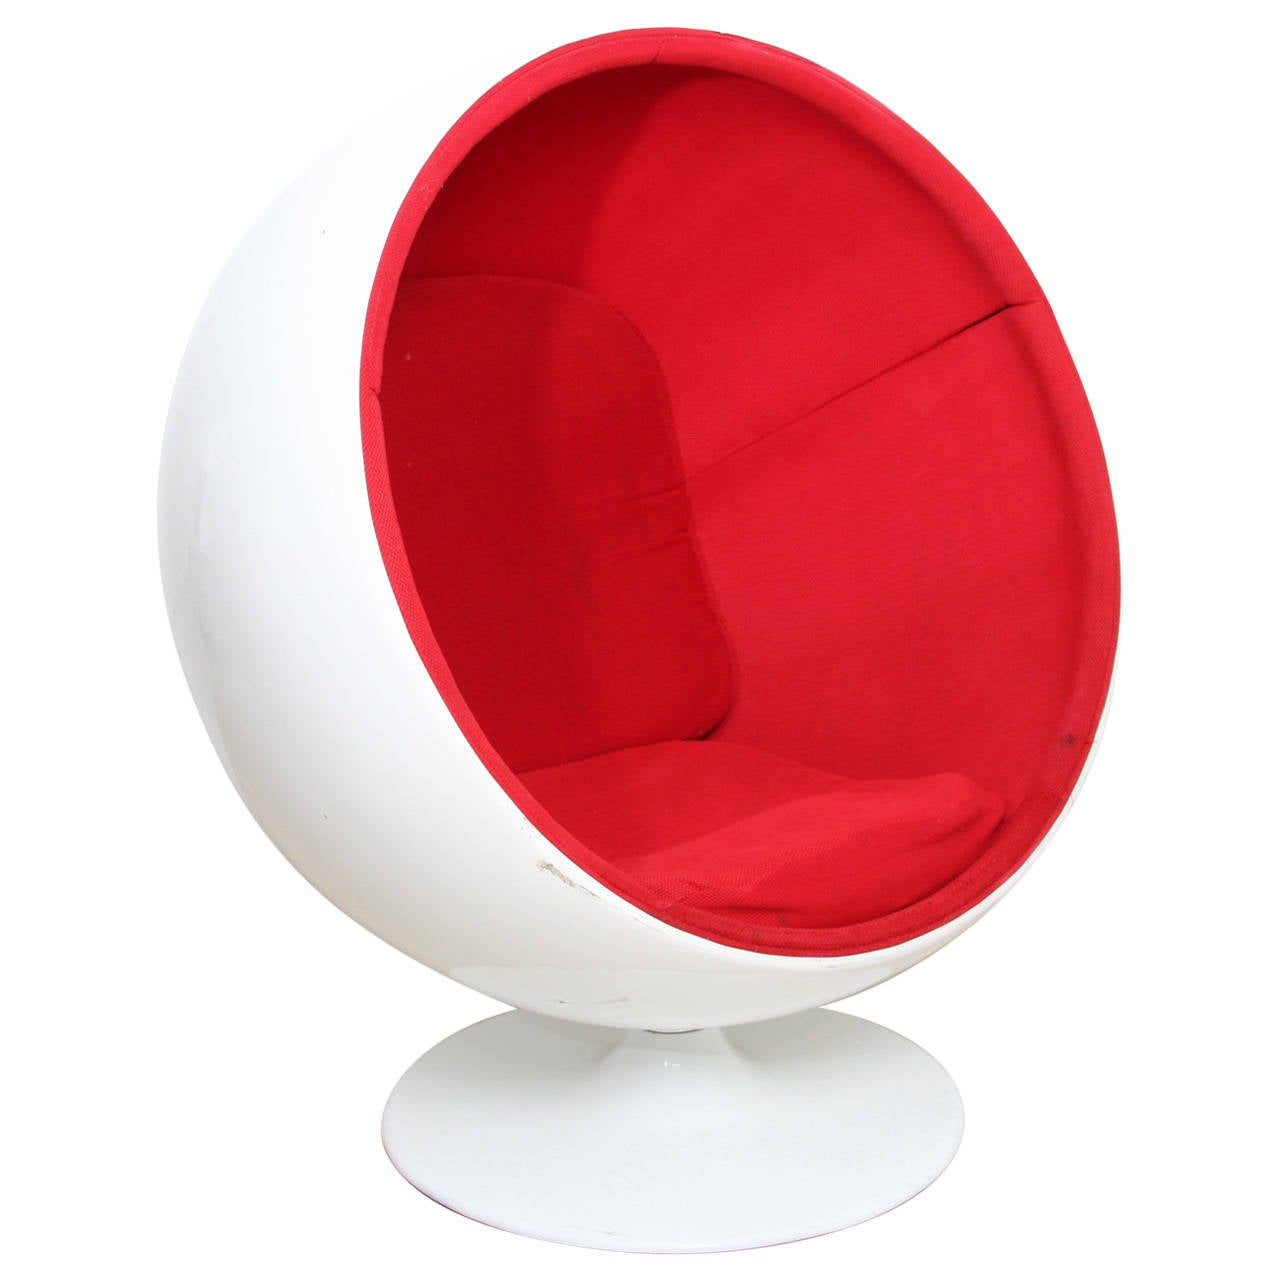 Ball chair designed by eero aarnio and produced by asko in 1963 at 1stdibs - Ball chair by eero aarnio ...